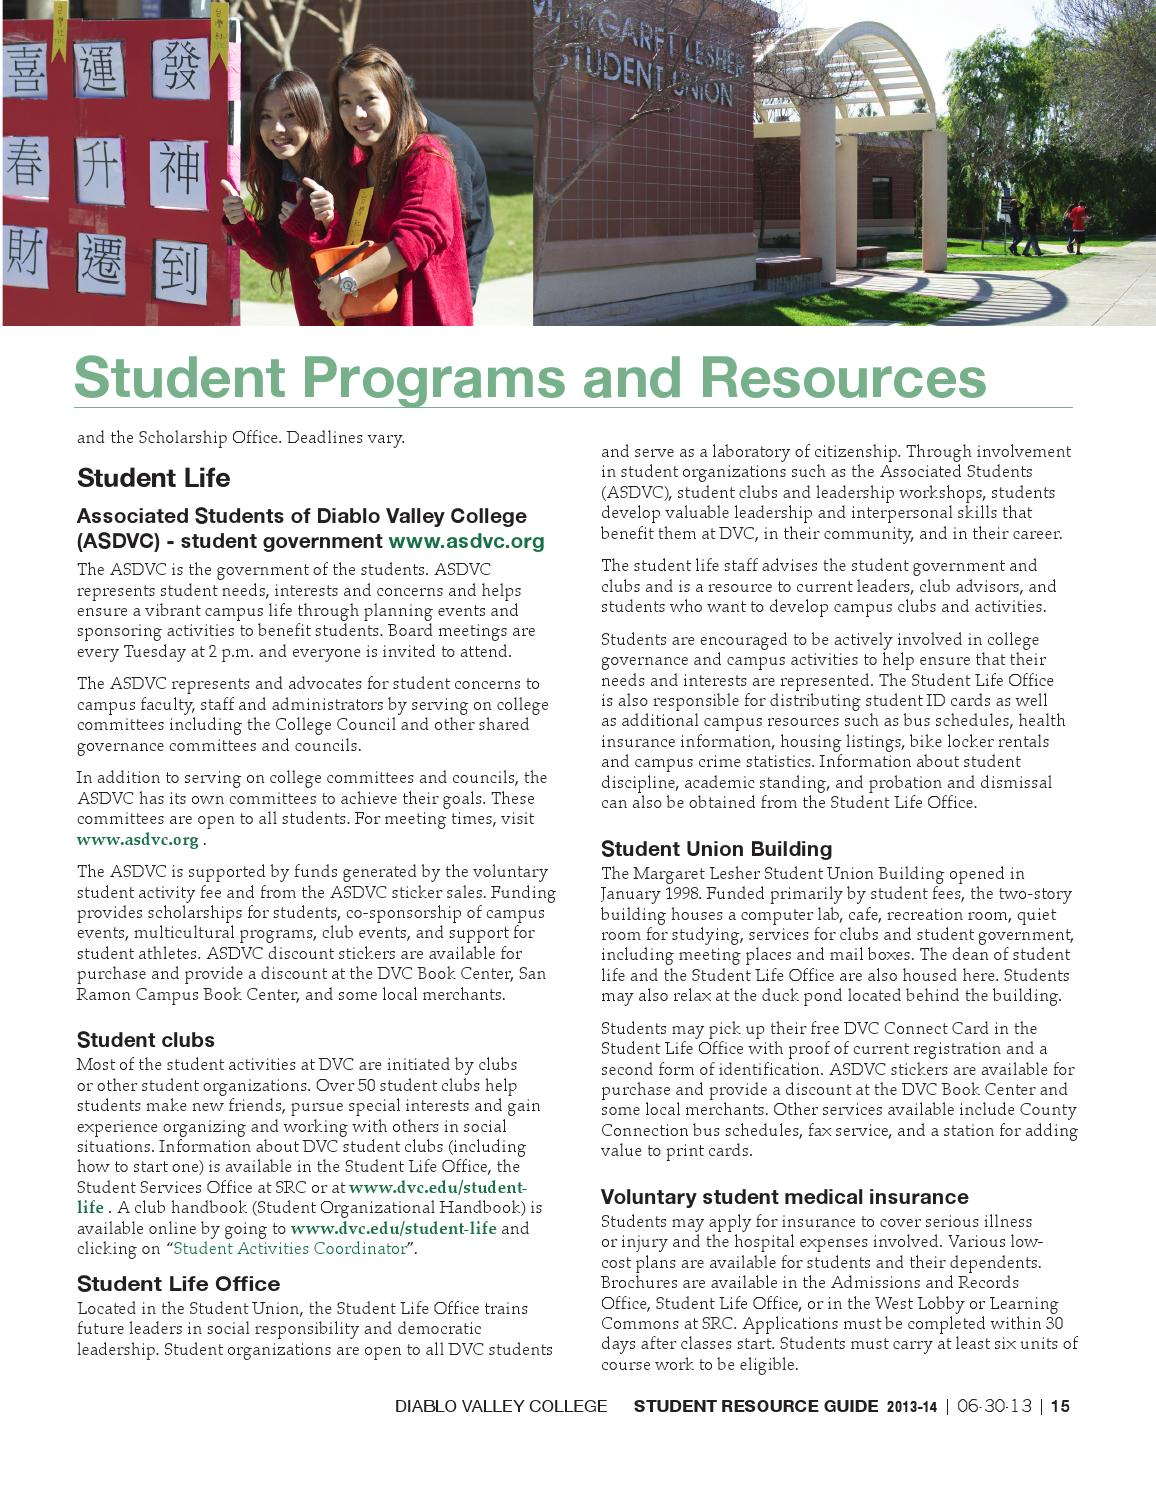 Resource guide 2013 14 by diablo valley college issuu.